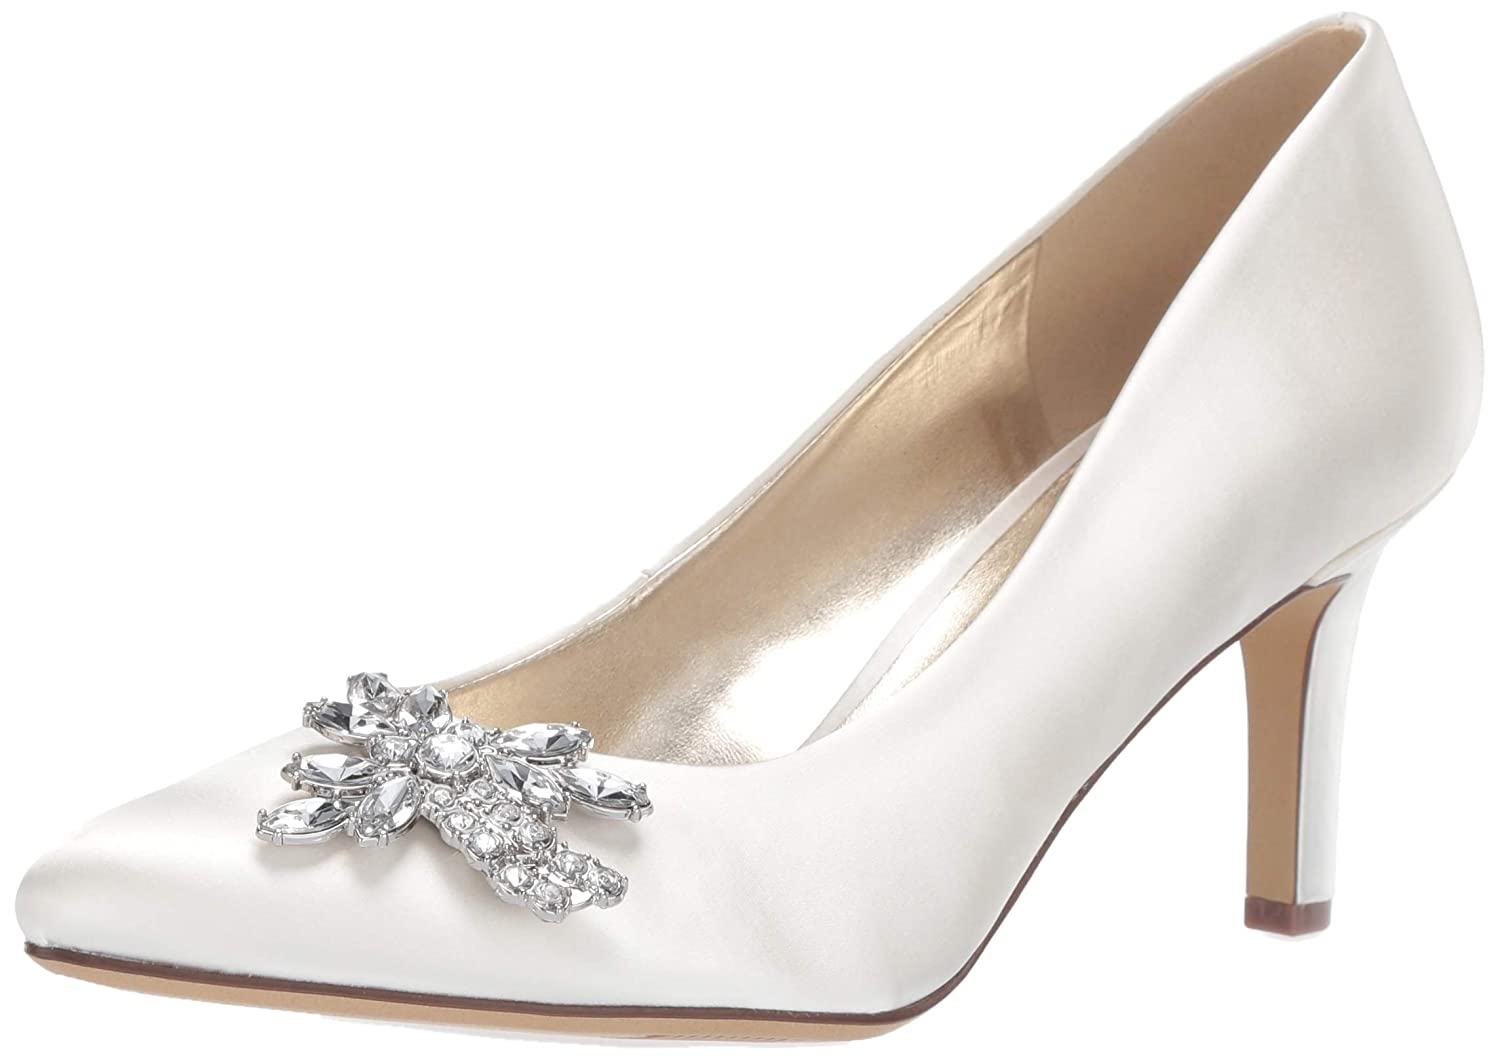 Ivory Satin Fabric Naturalizer Natalie Pumps